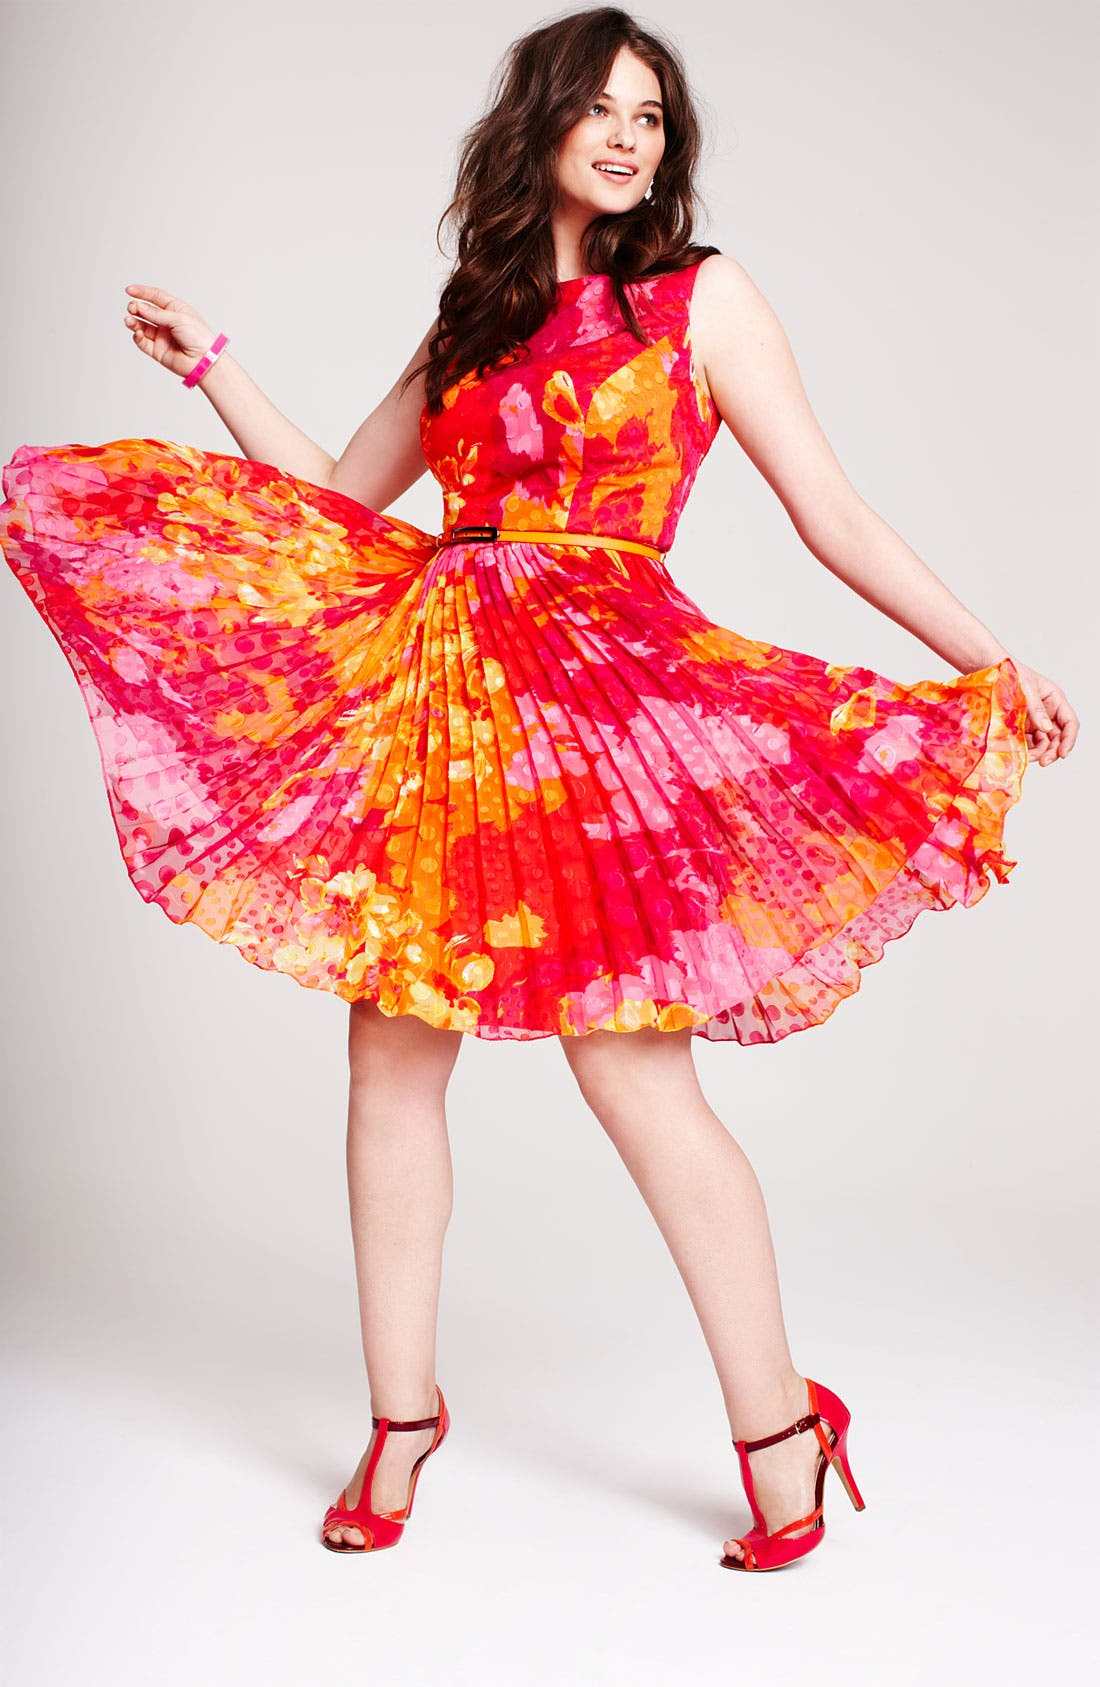 Alternate Image 1 Selected - Adrianna Papell Dress & Accessories